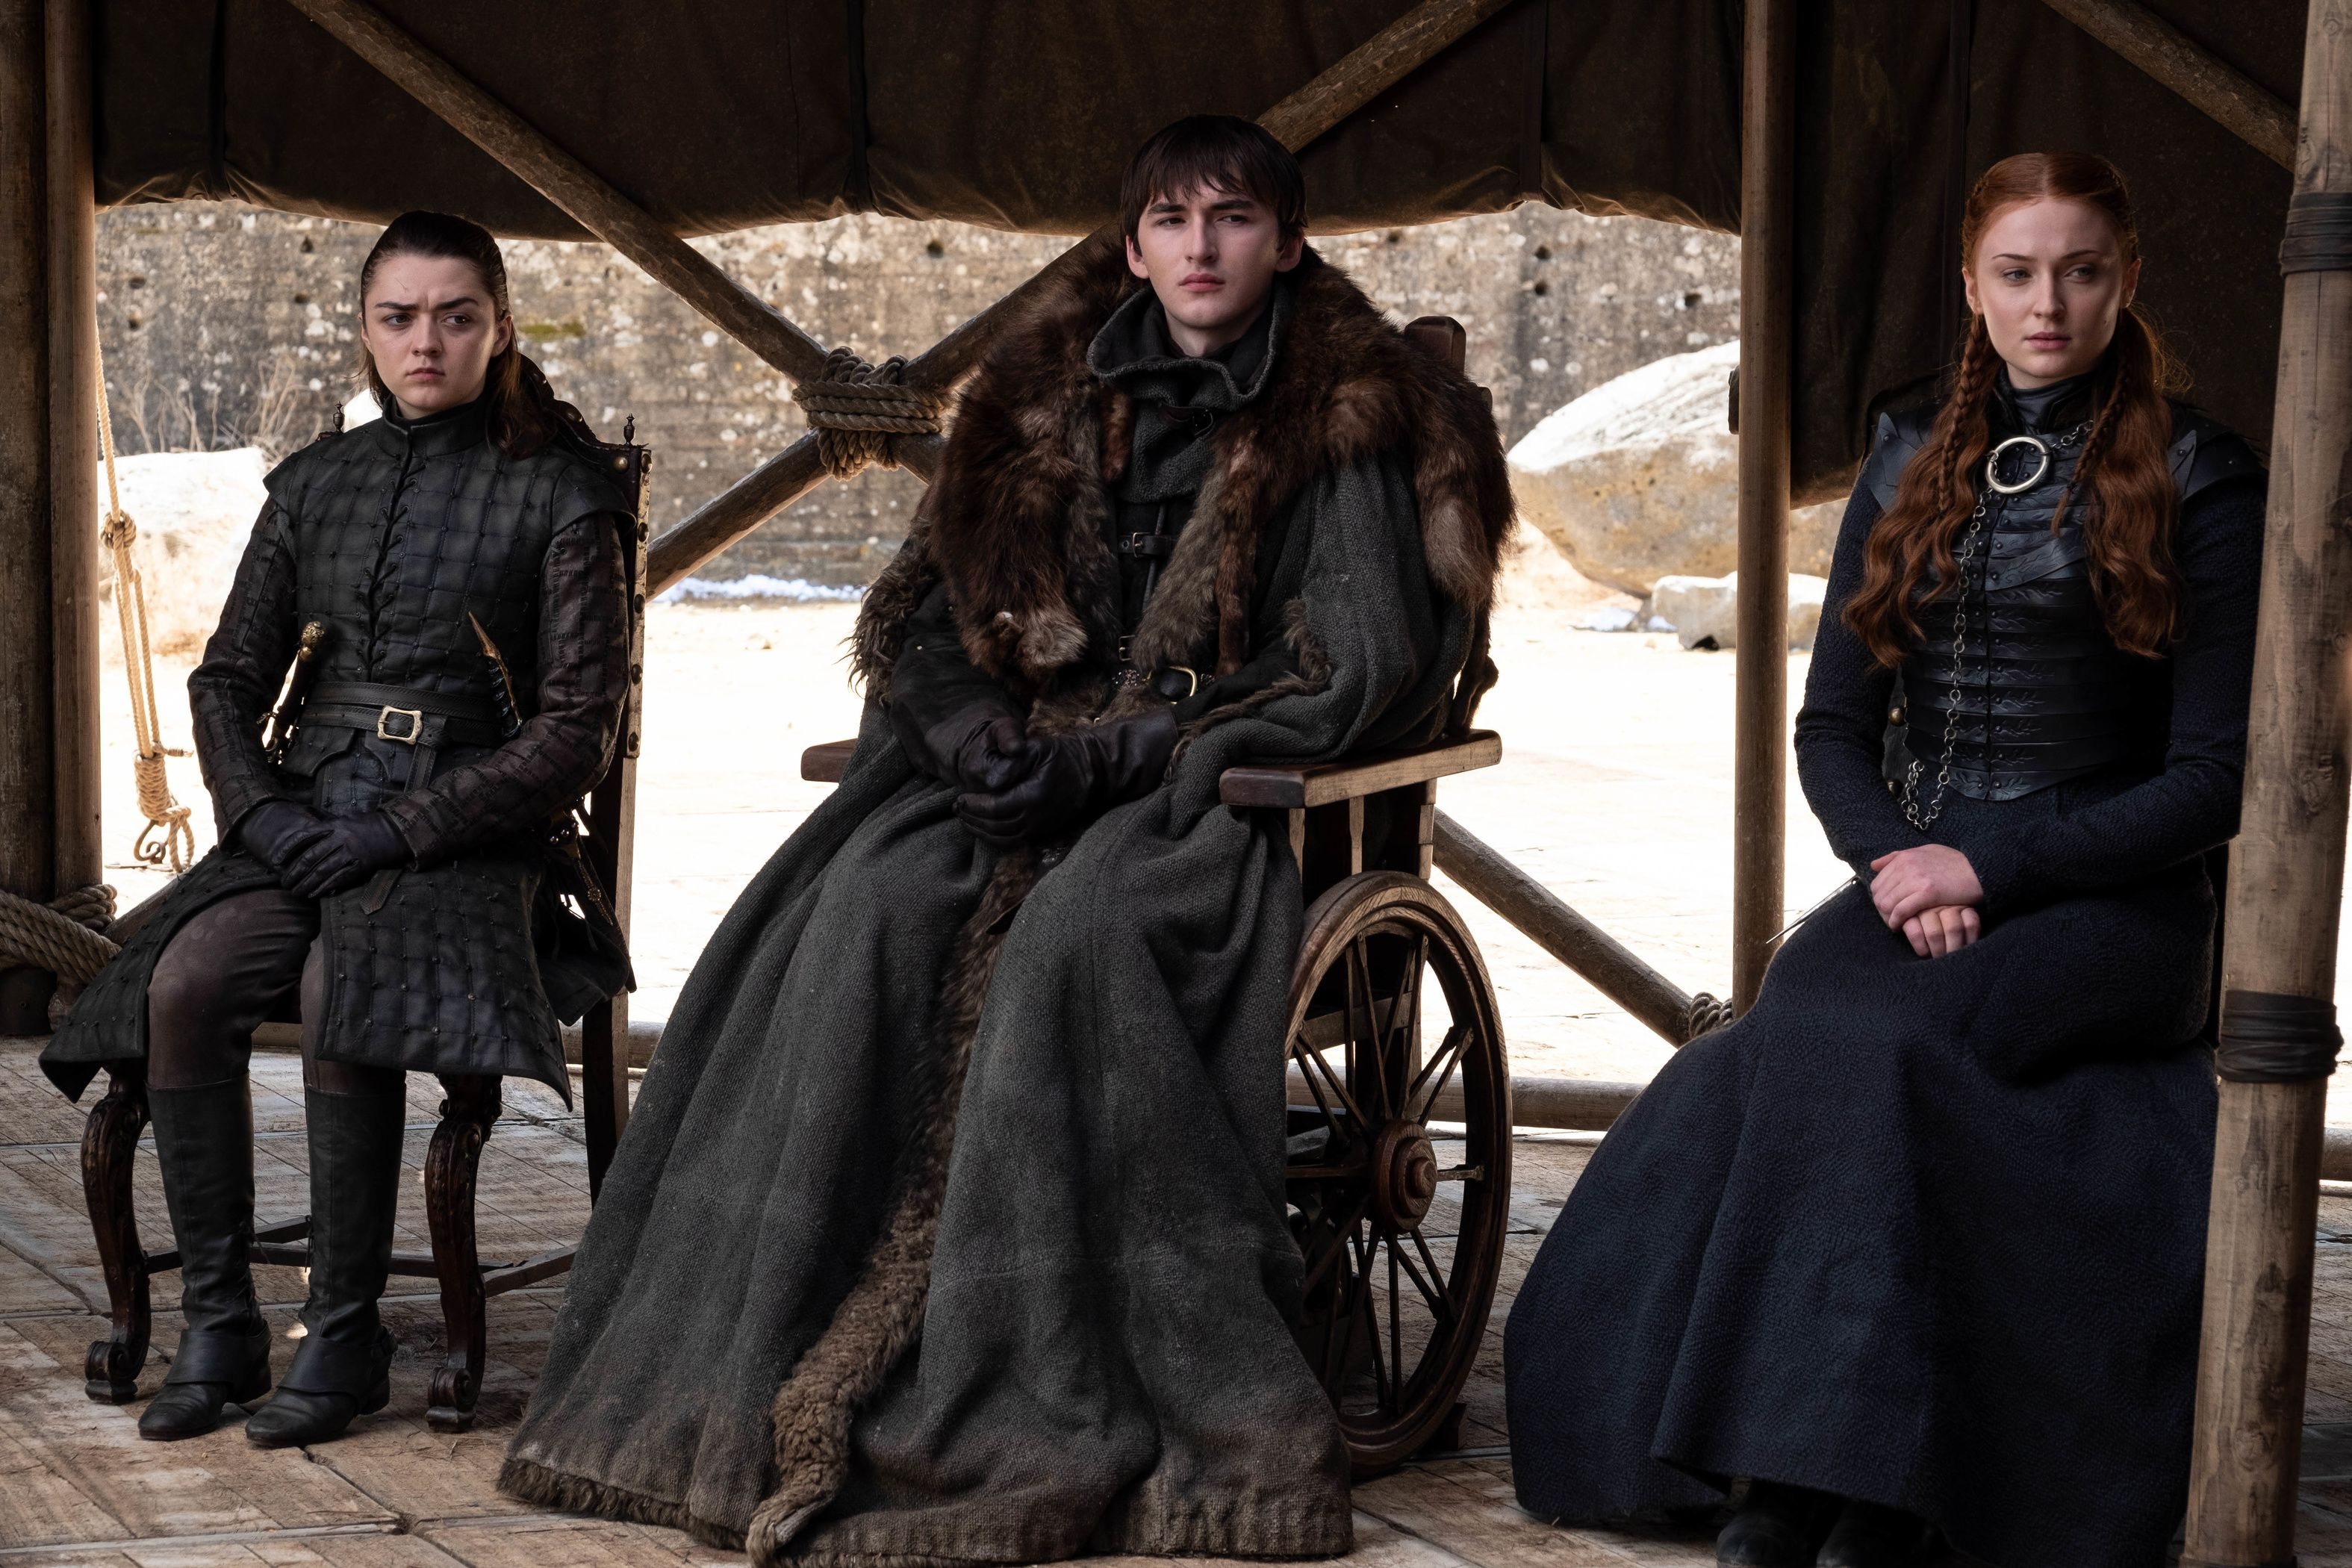 Twitter Is Trolling Bran's Ending in the Game of Thrones Finale